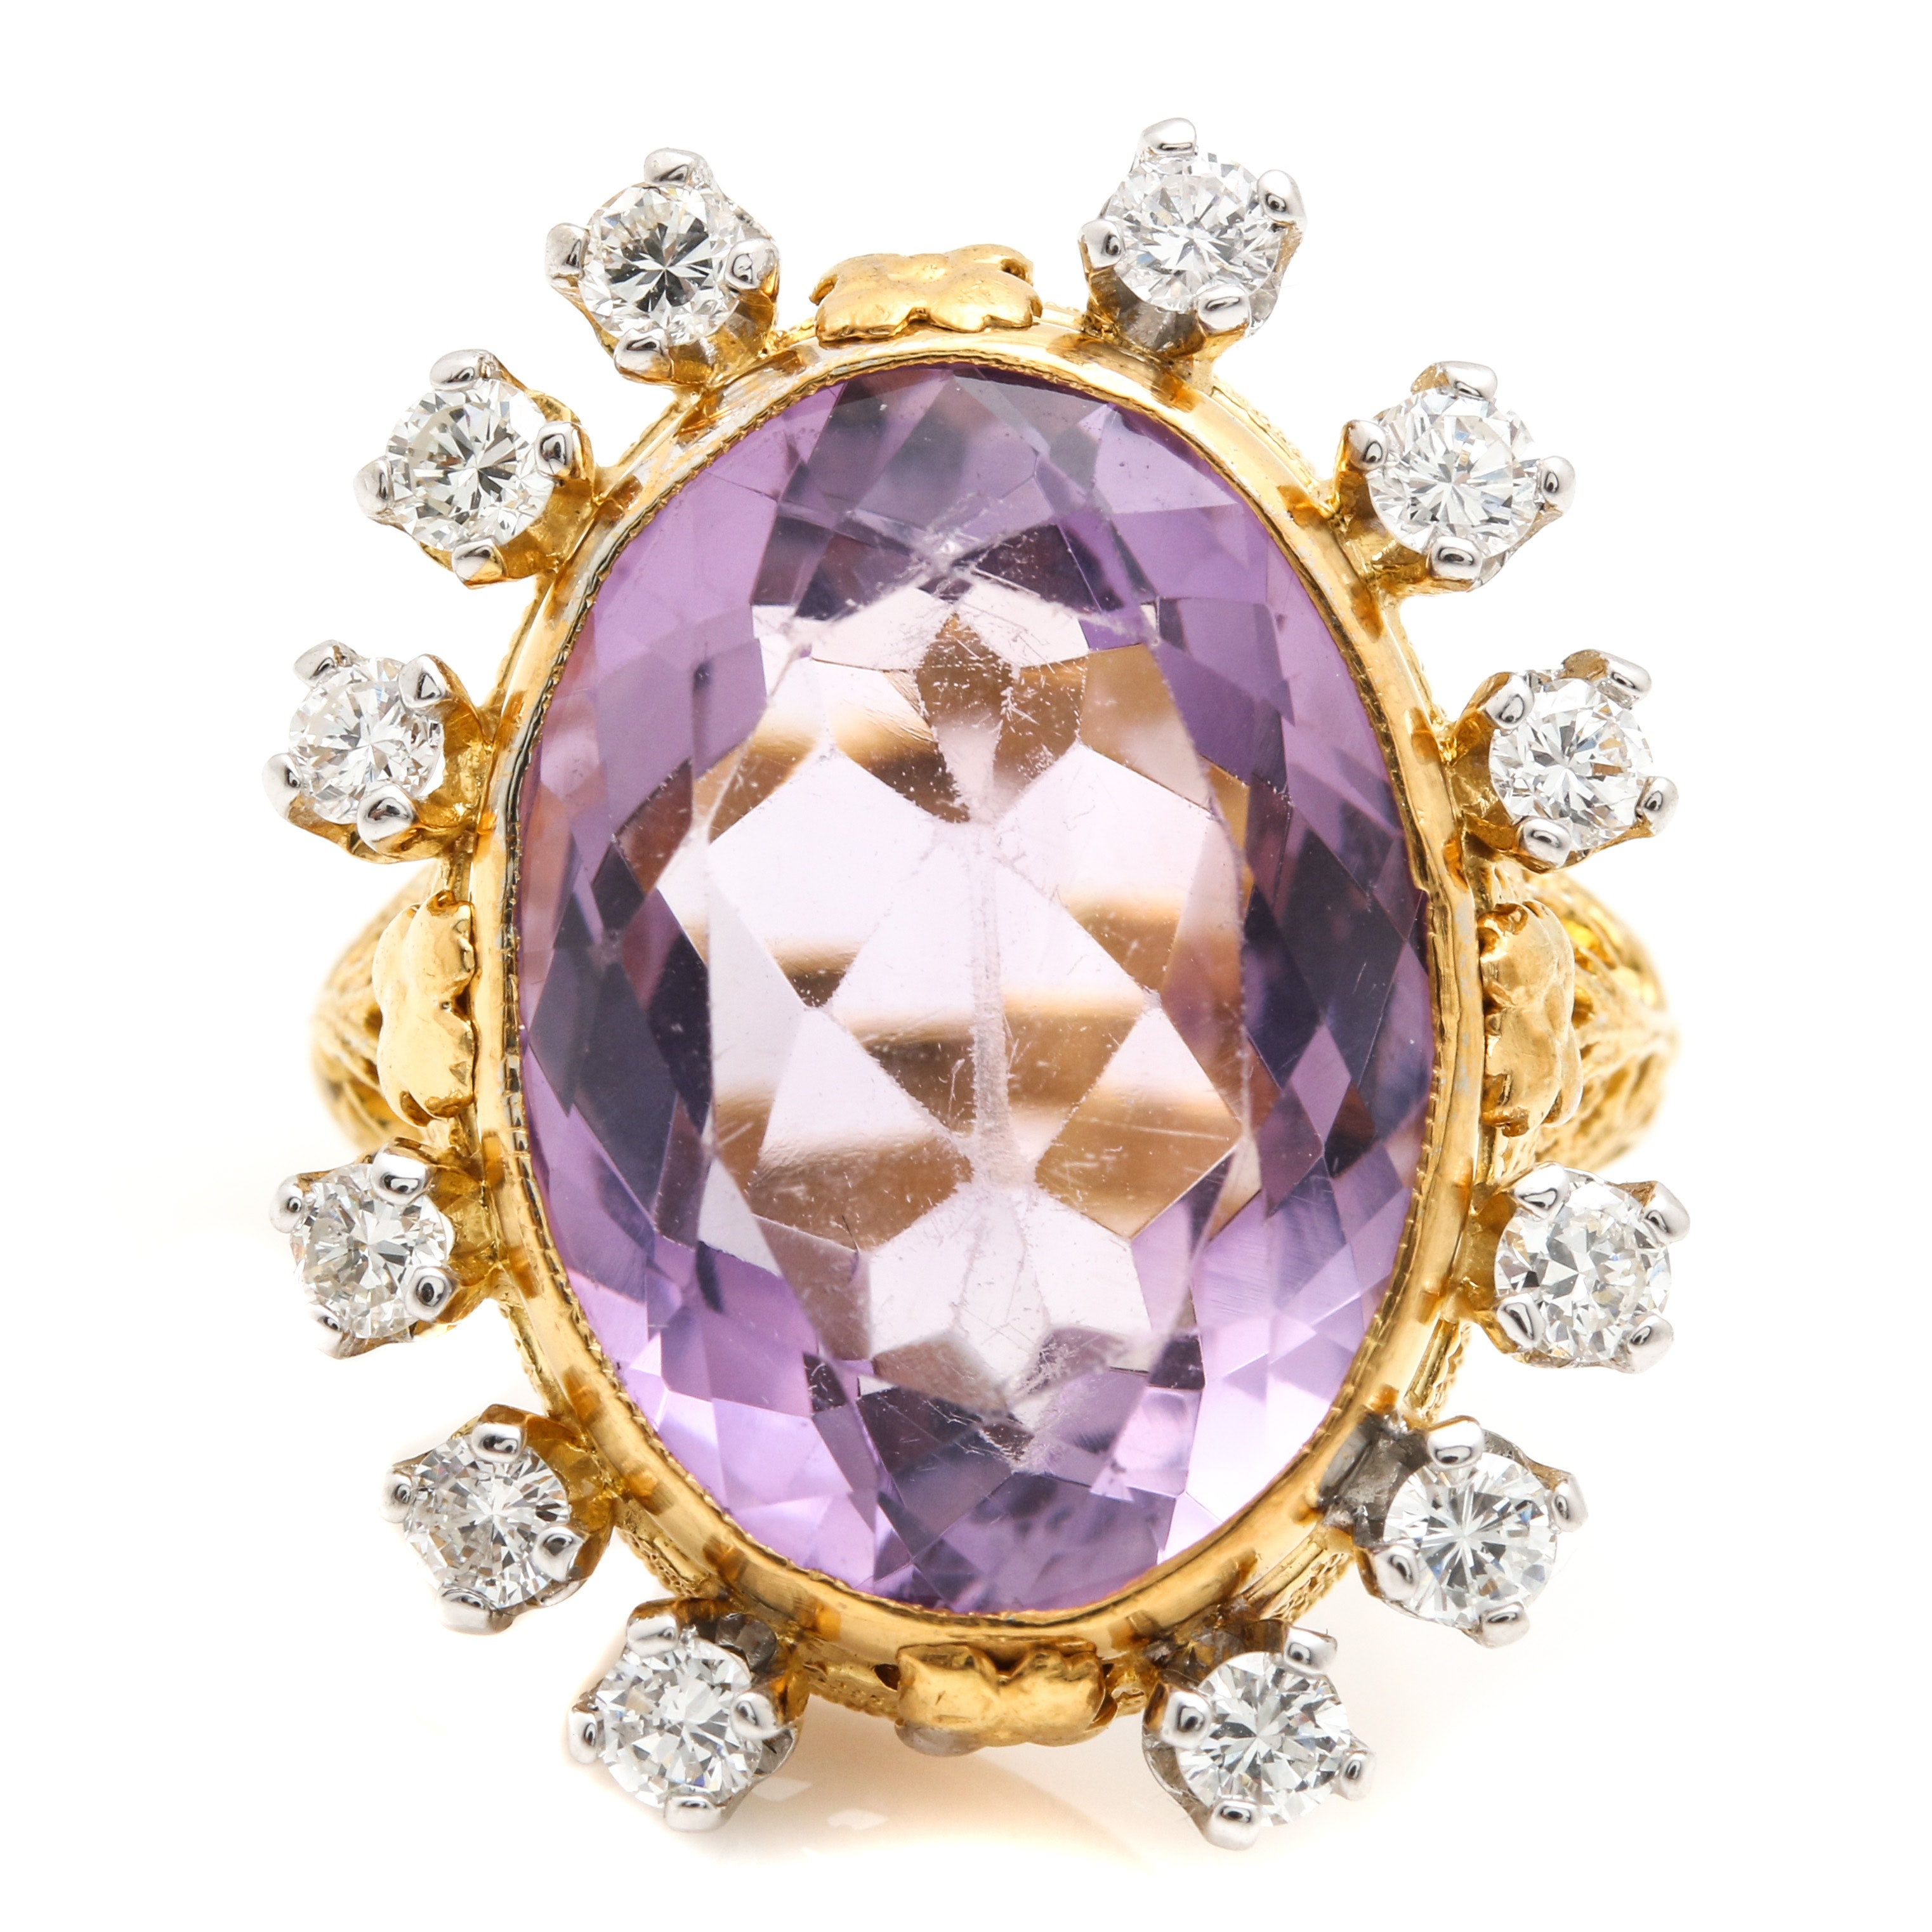 14K Yellow Gold Amethyst and Diamond Ring With White Gold Accents